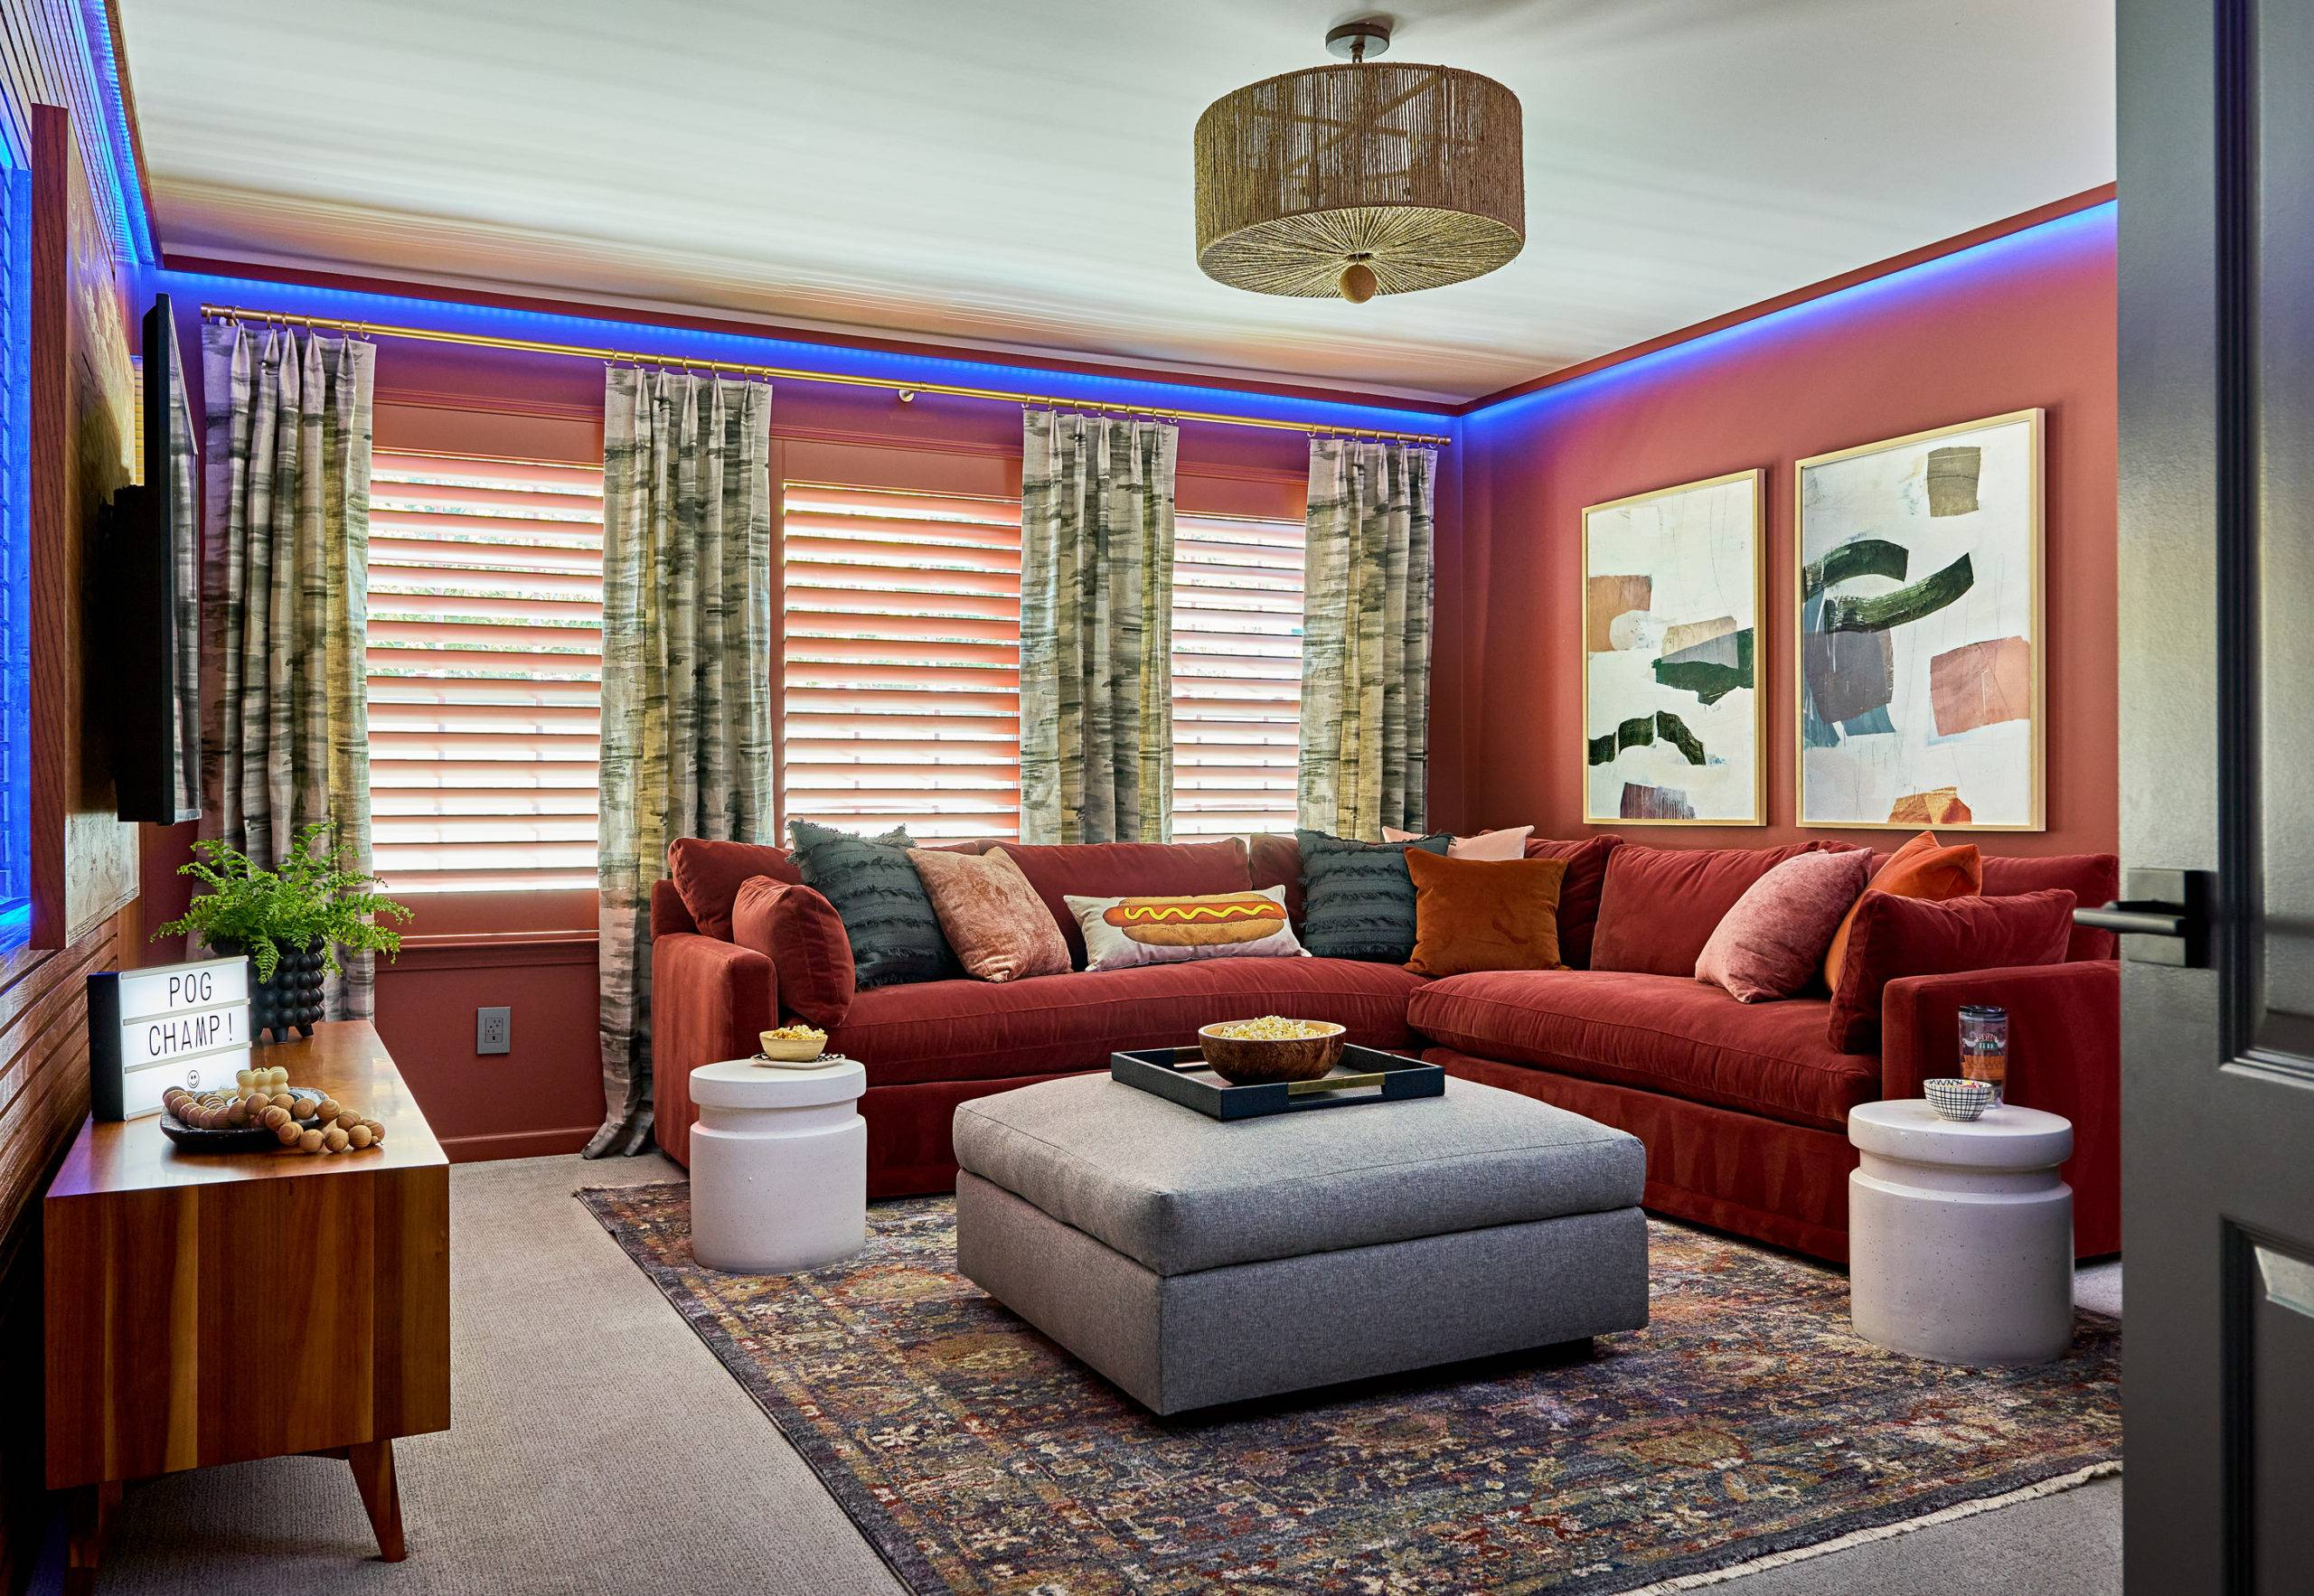 red game room with large couch and neon lighting